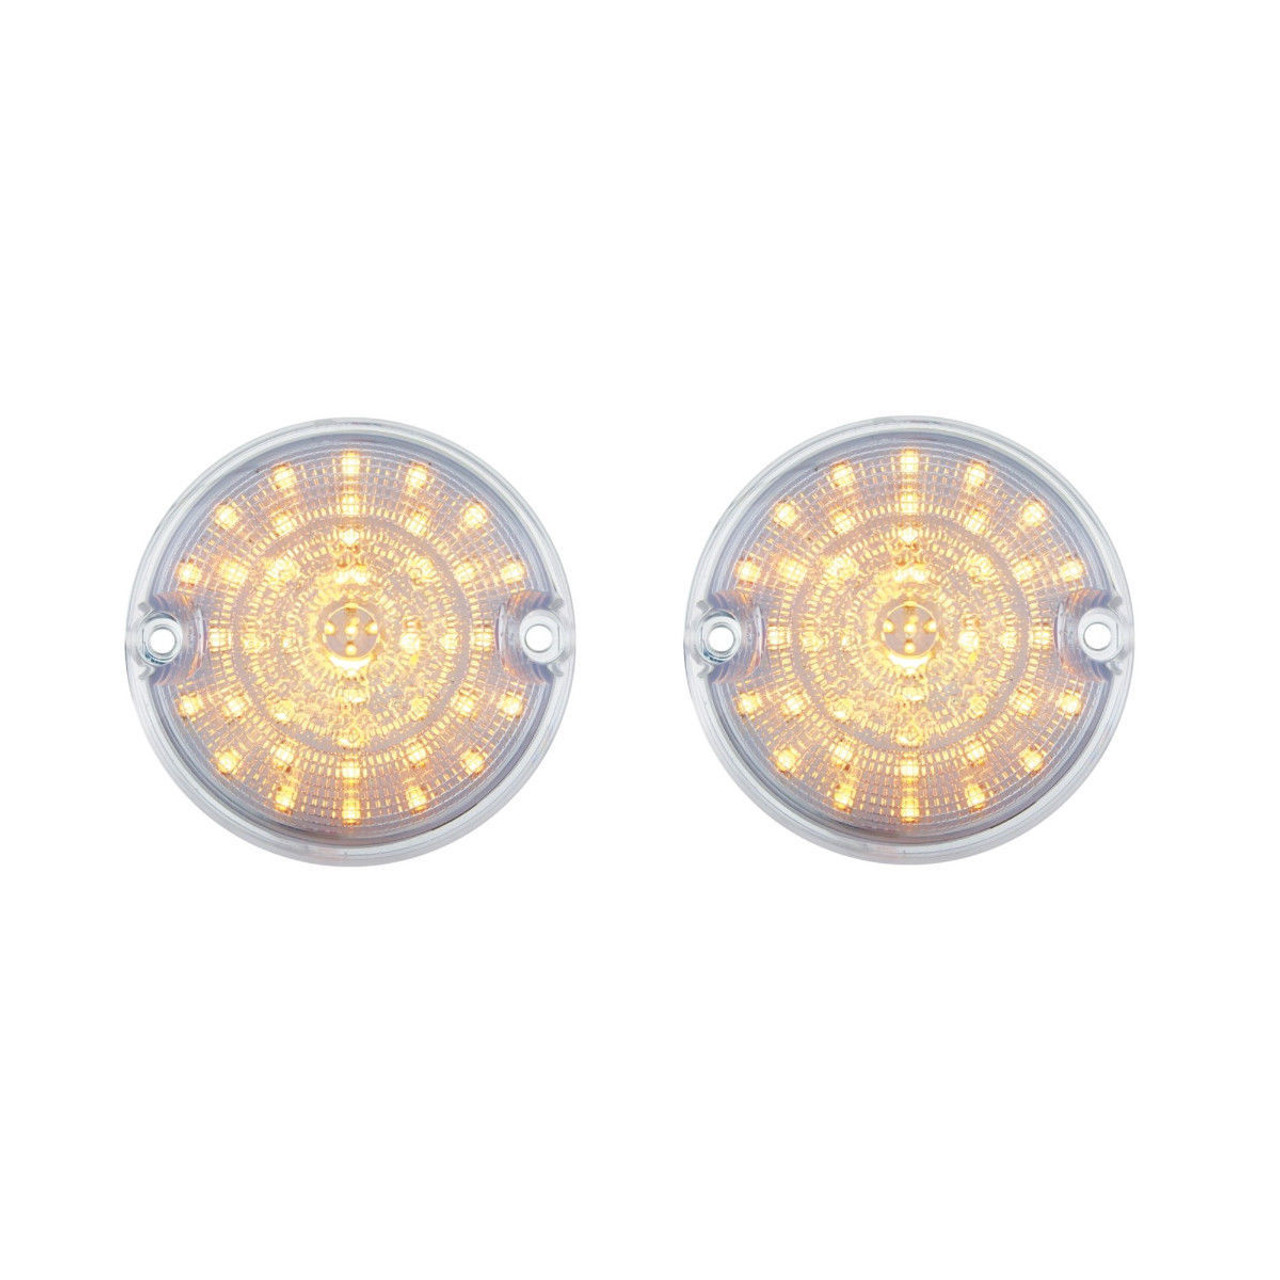 1955 1956 1957 Chevy Truck Amber LED Clear Lens Parking Lights, PAIR  - 55 56 57